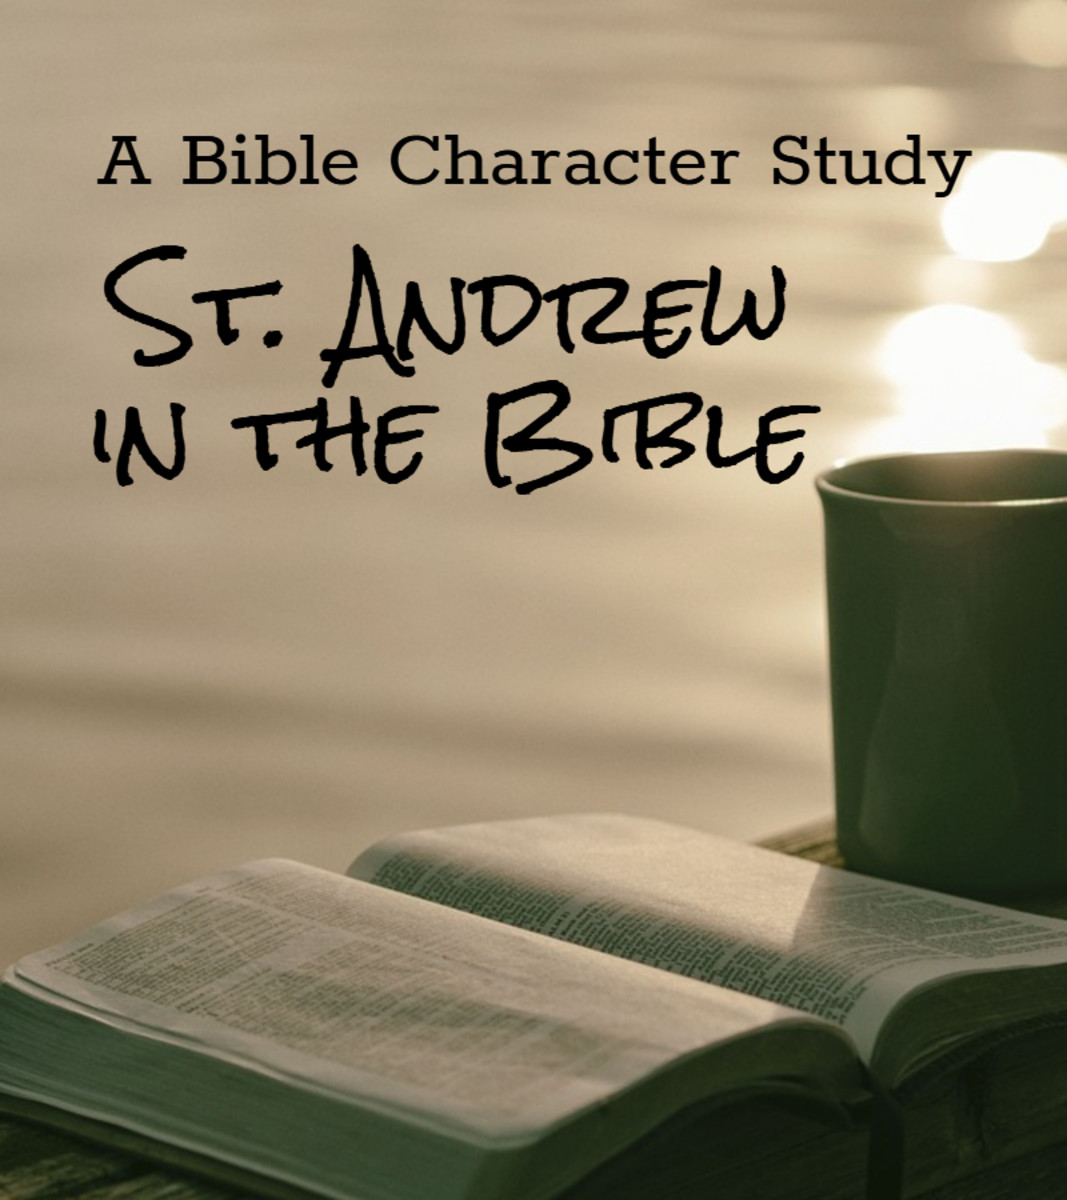 Andrew, the Apostle - Bible Study - BibleWise